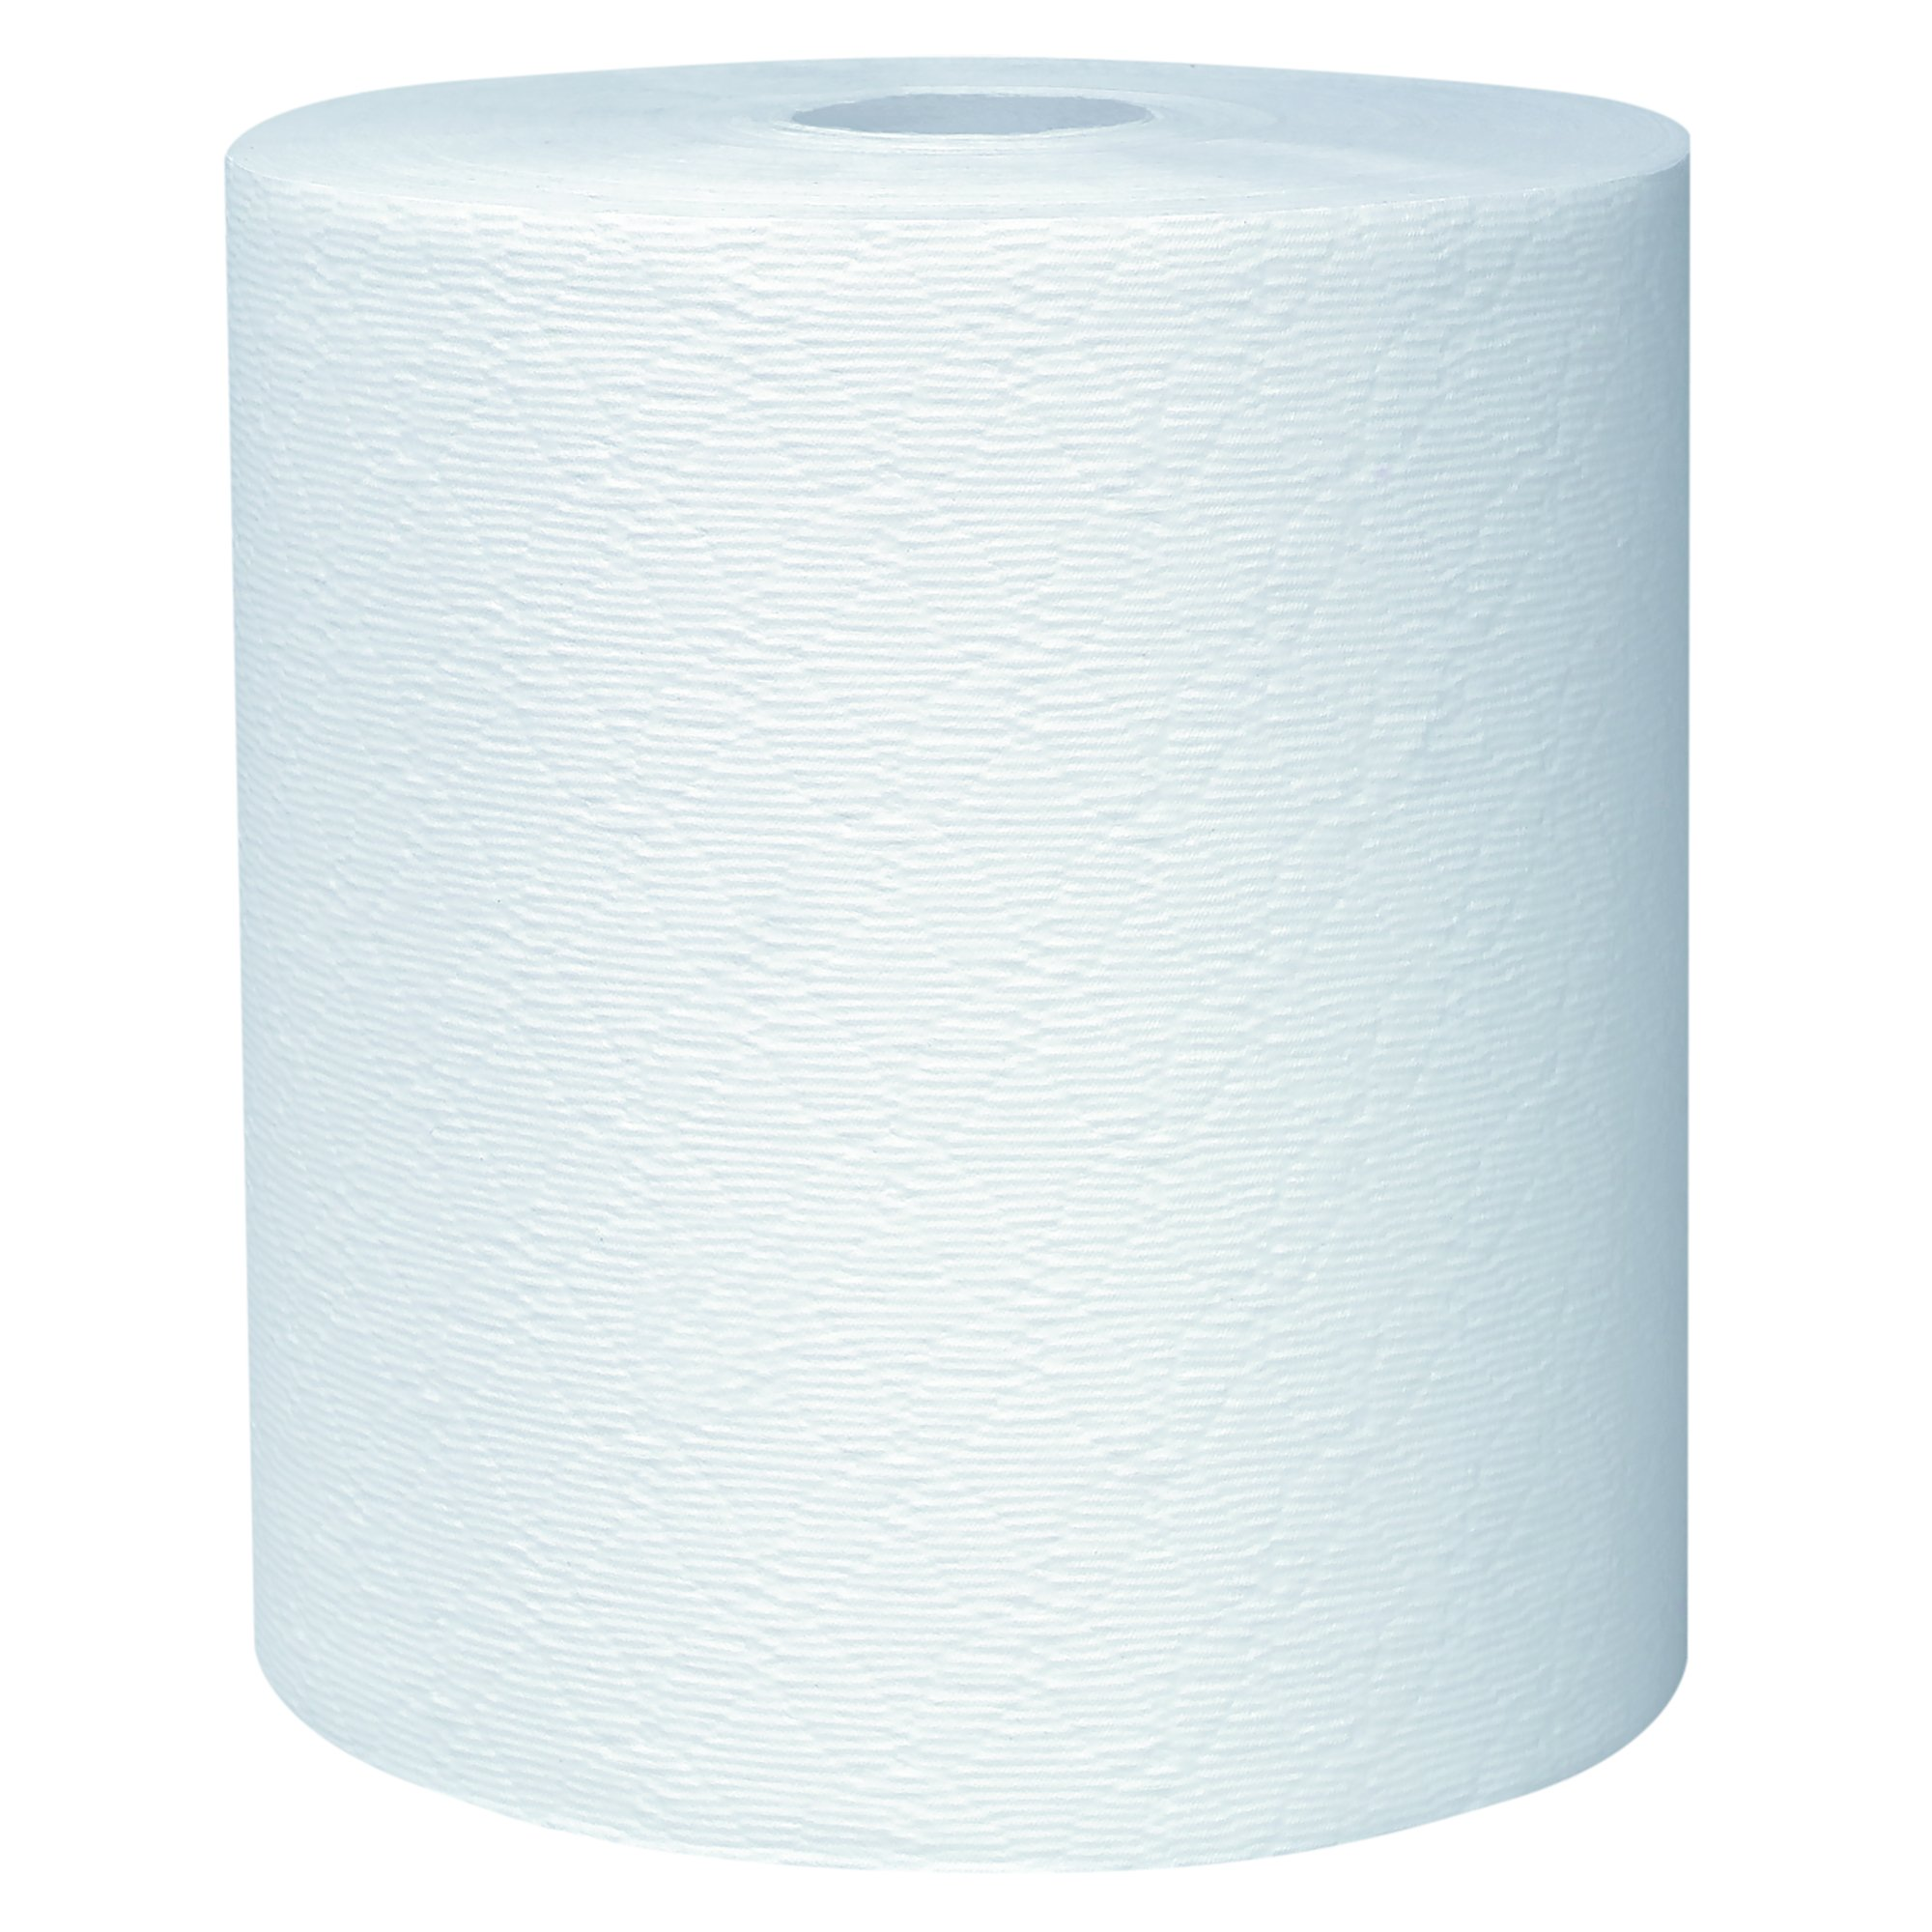 Paper Towel Rolls For Hamsters: Kleenex Hard Roll Paper Towels (50606) With Premium